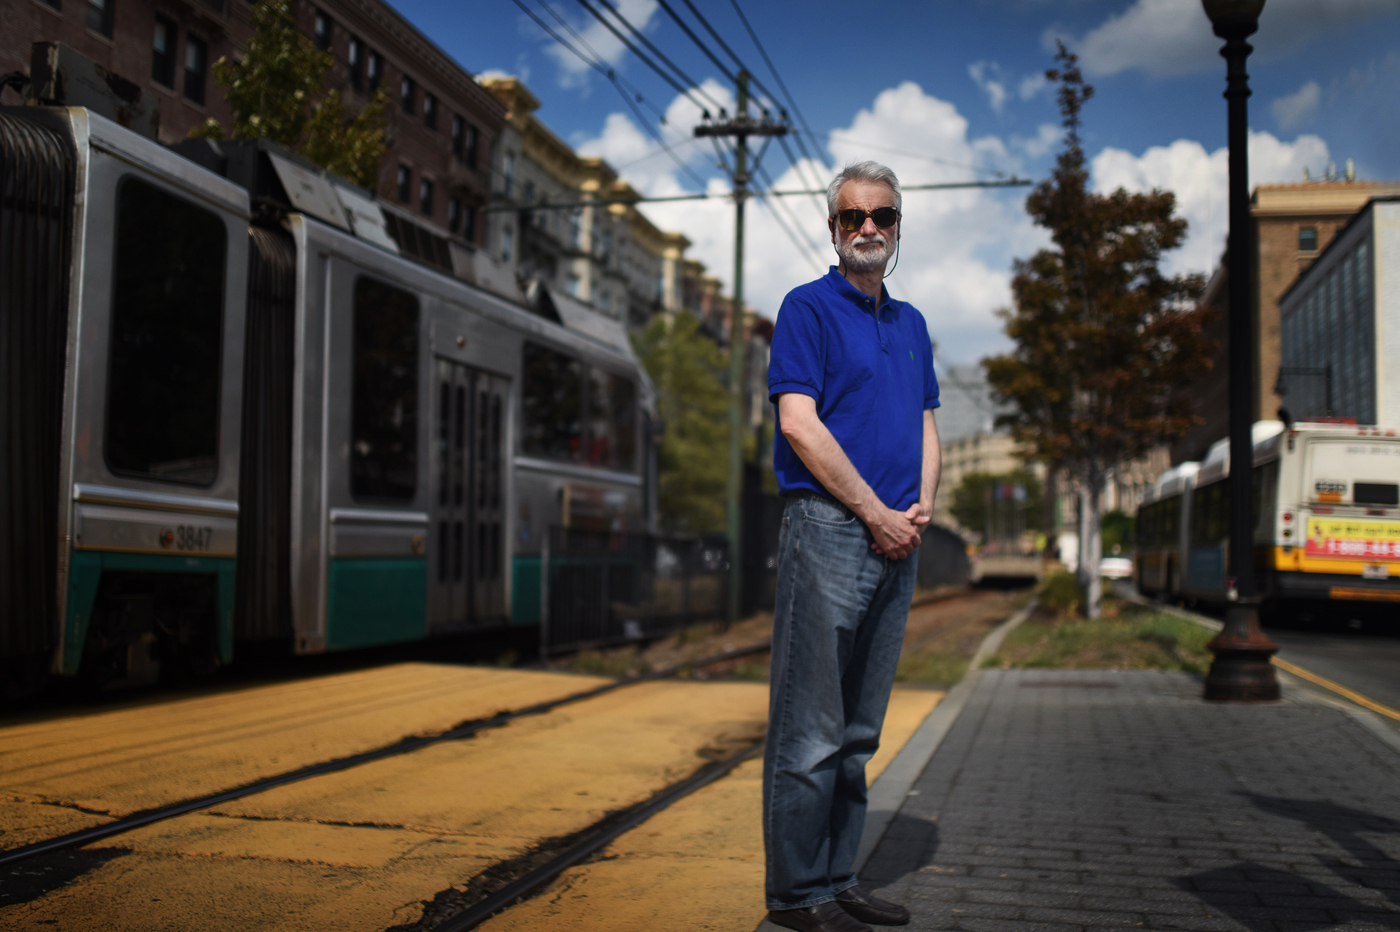 Haris Koutsopoulos, professor of civil and environmental engineering, stands at Northeastern station on the MBTA Green Line. Photo by Matthew Modoono/Northeastern University